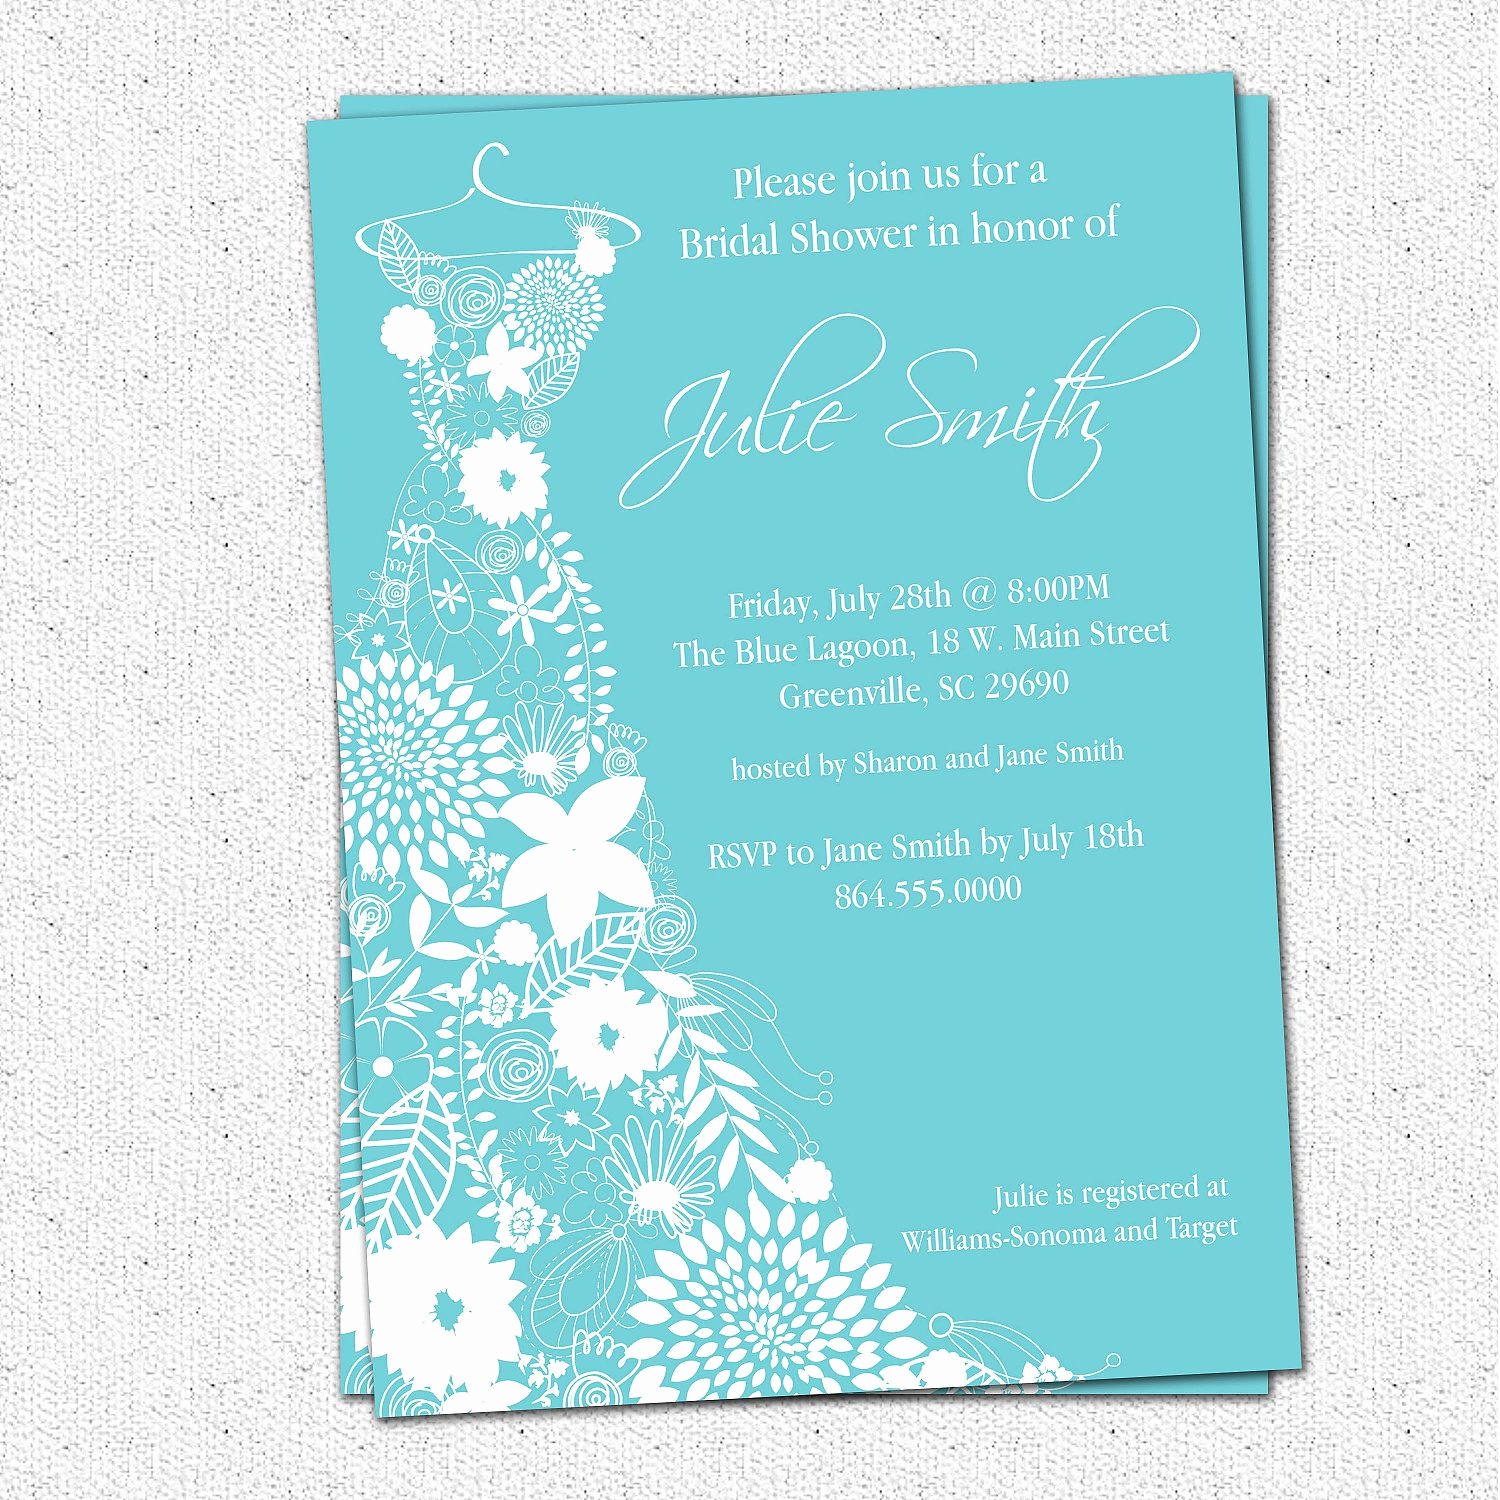 Printable Bridal Shower Invitation Templates Luxury Bridal Shower Invitation Bridal Shower Invitations